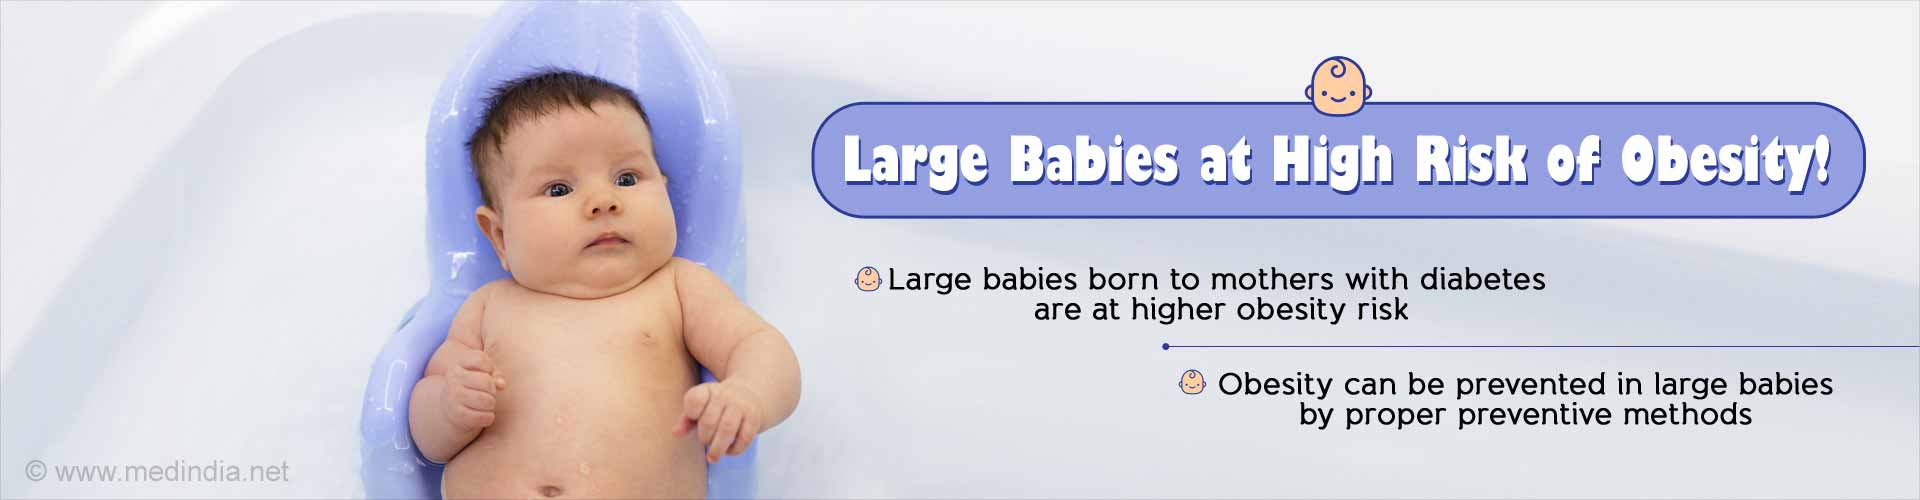 Large babies at high risk of obesity. Large babies born to mothers with diabetes are at higher obesity risk. Obesity can be prevented in large babies by proper preventive methods.